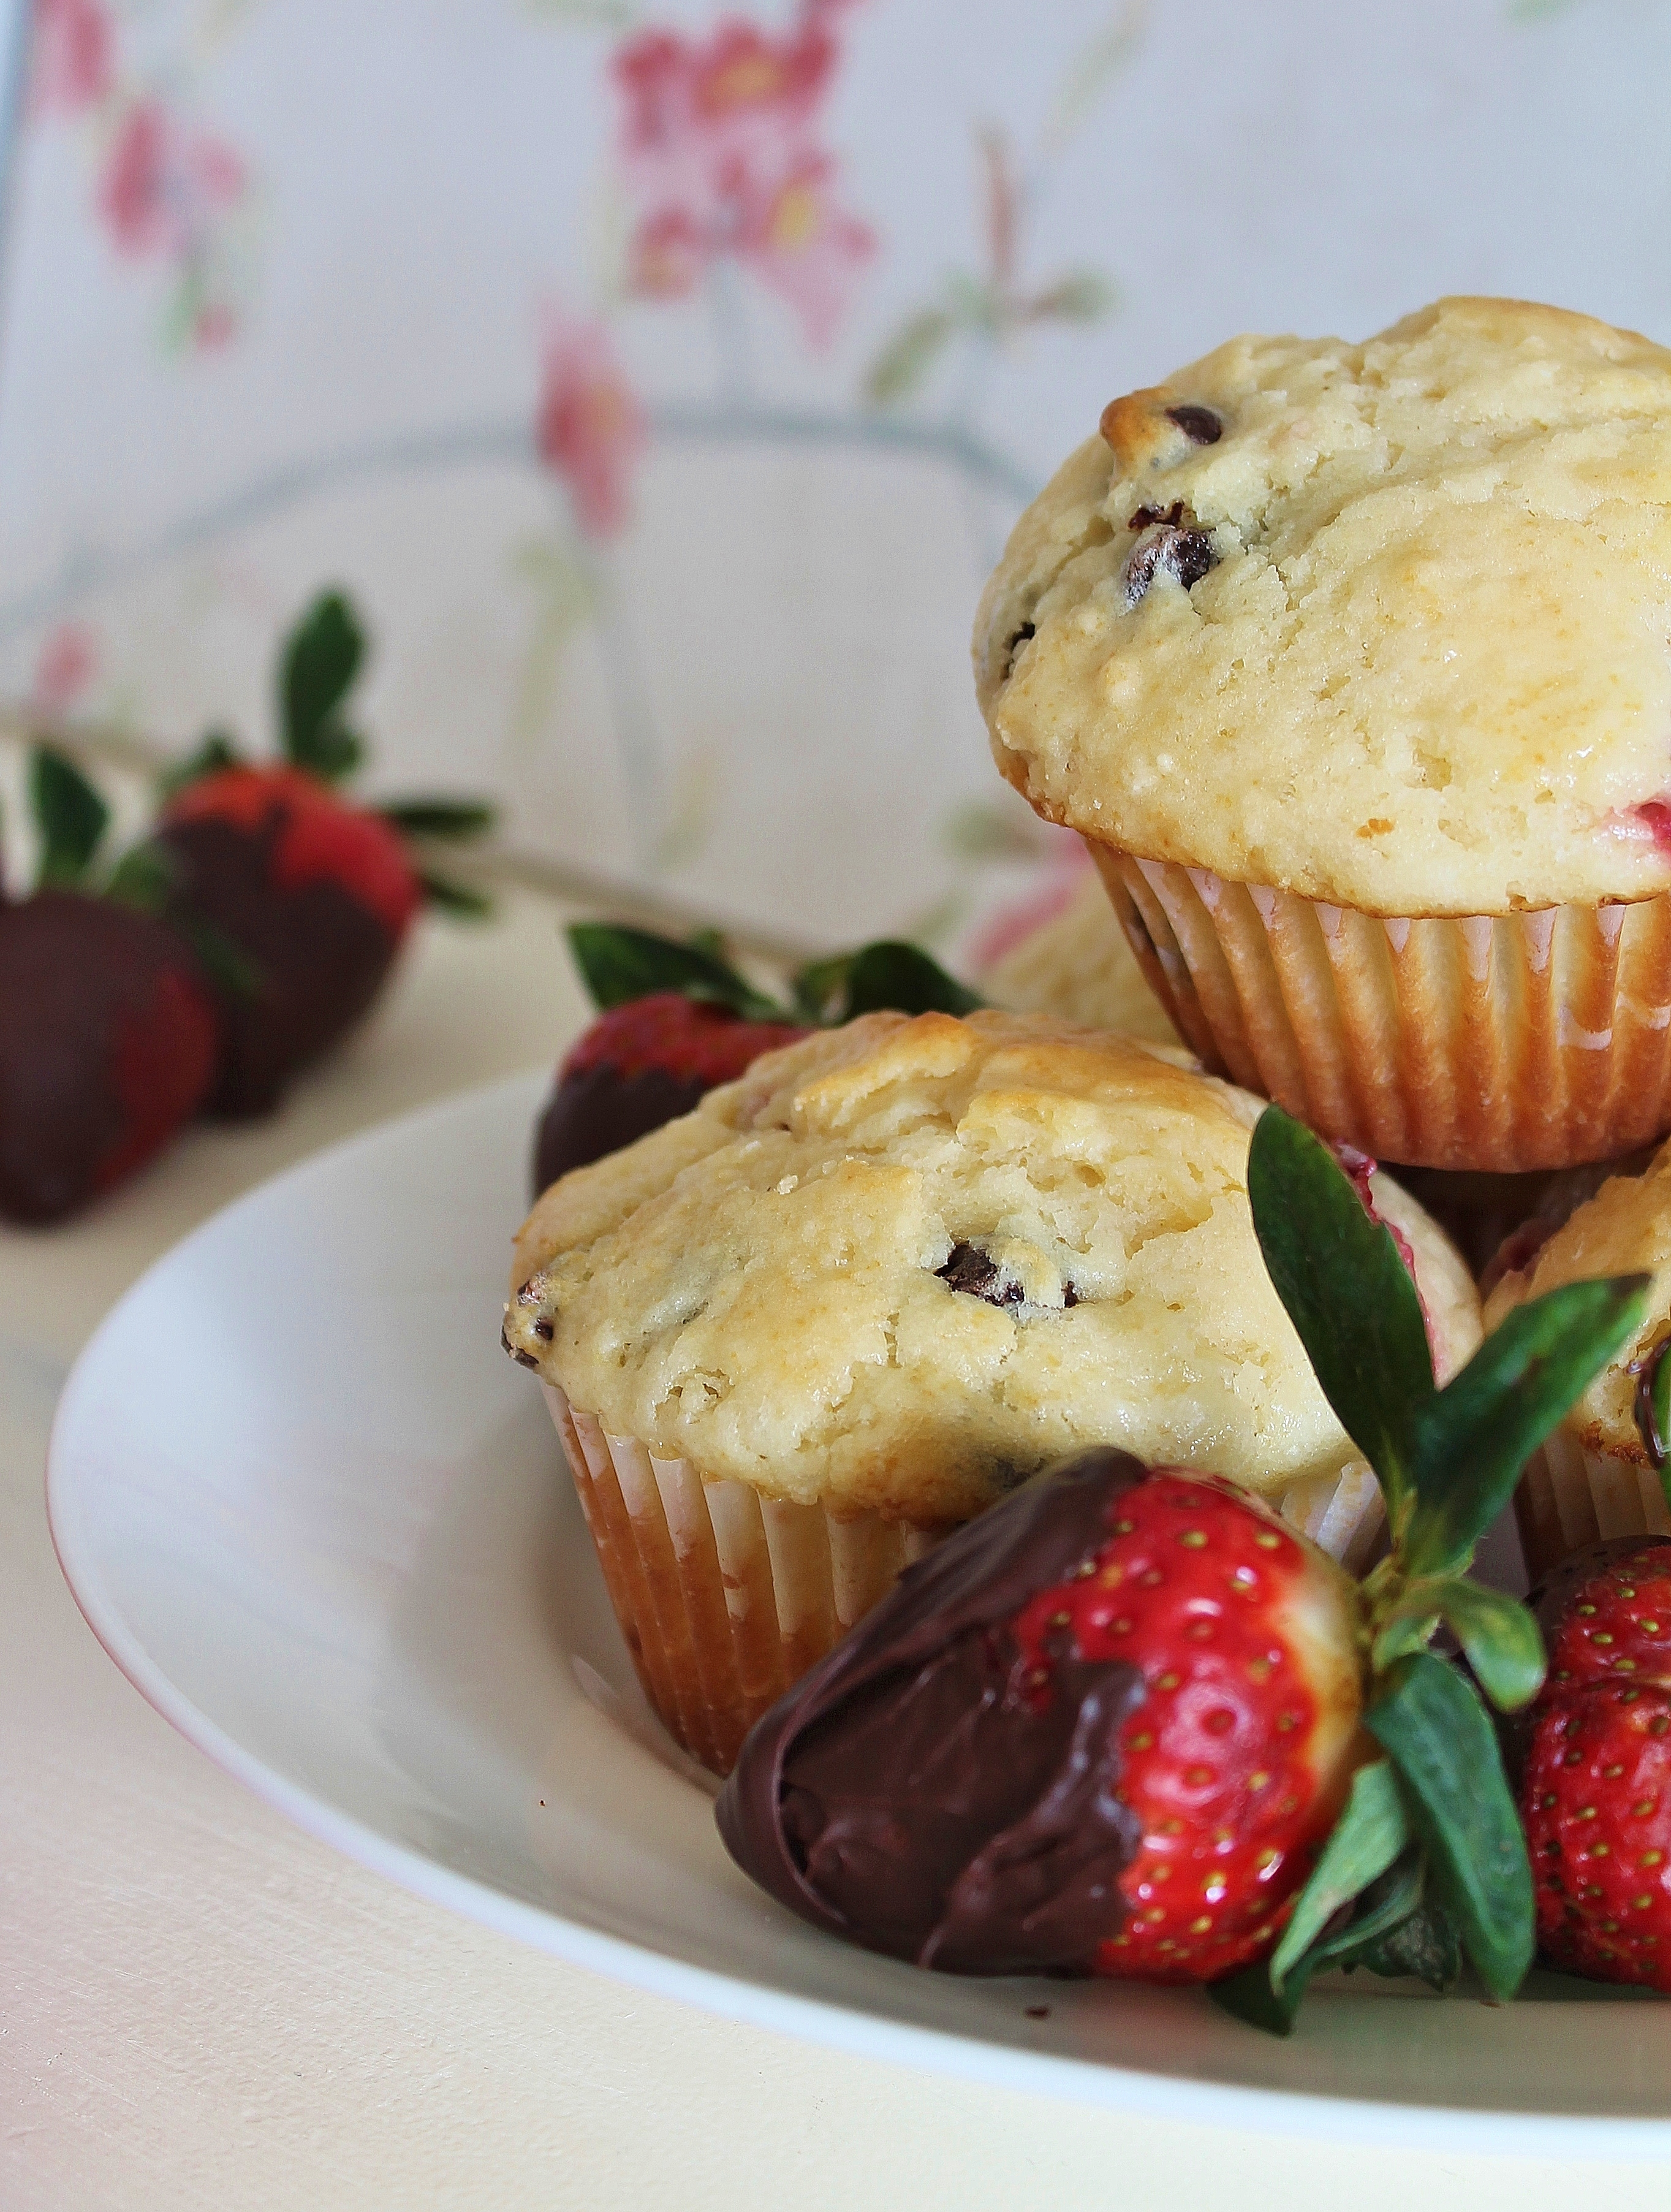 Chocolate_strawberry-muffin